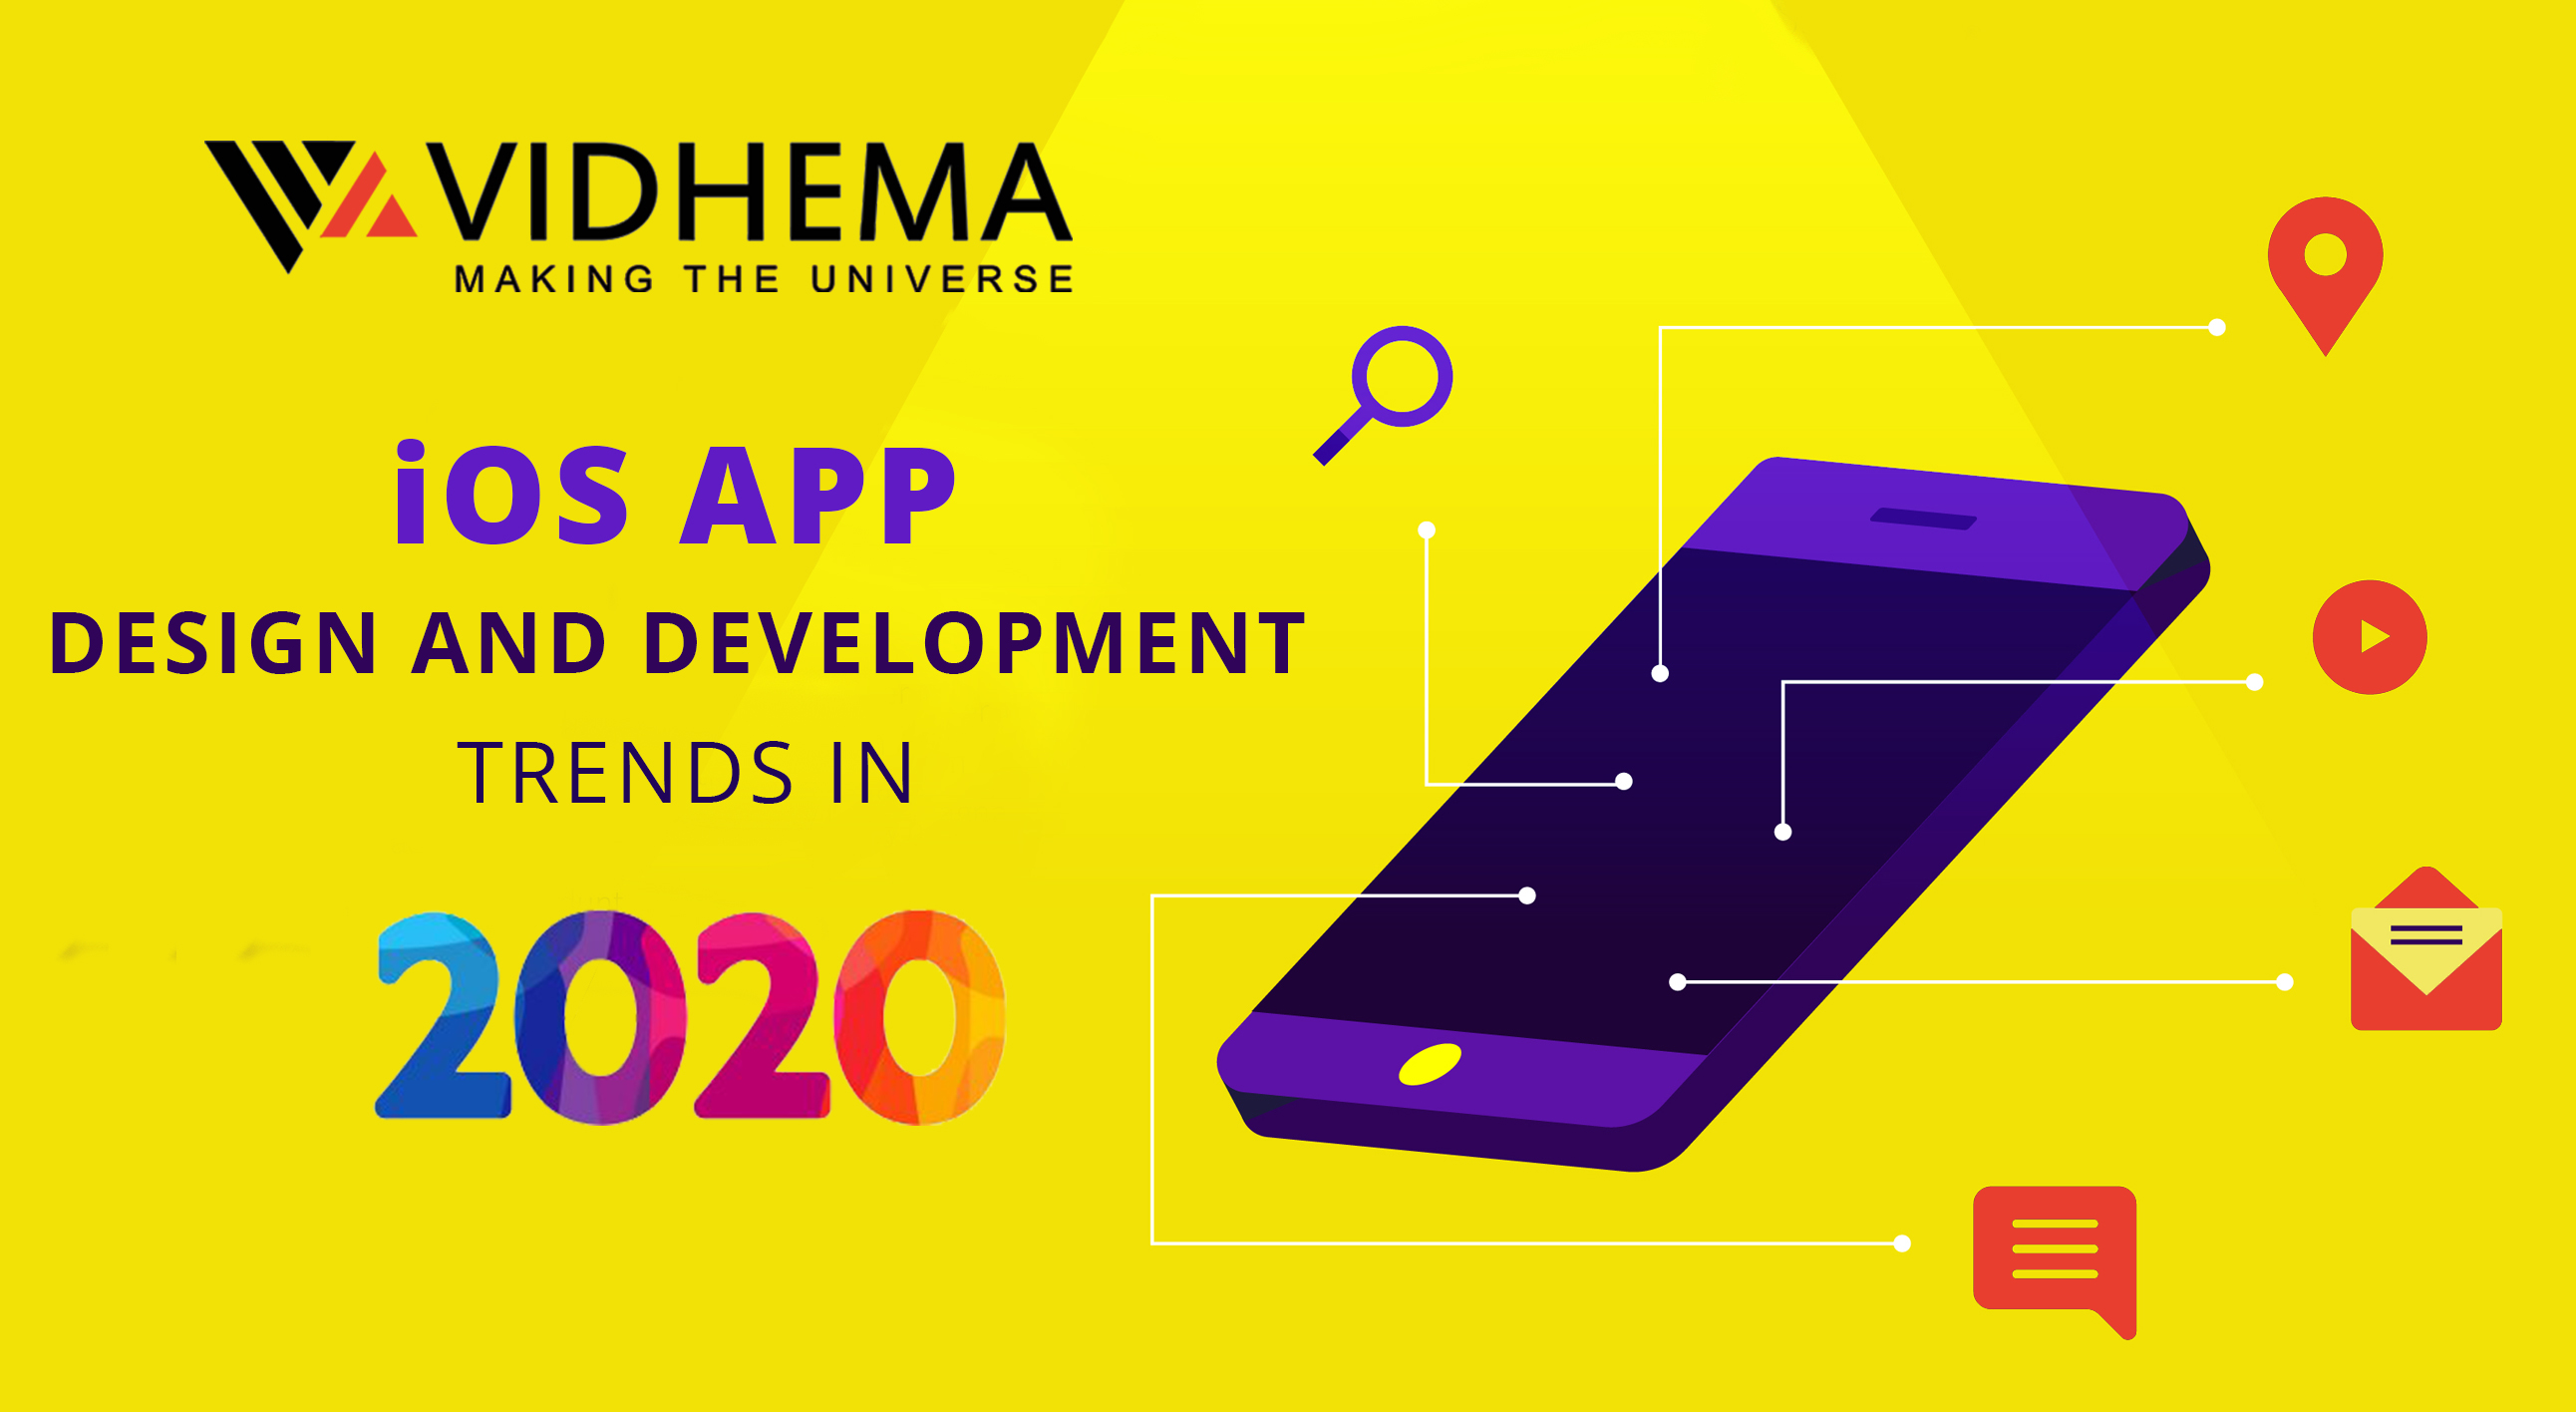 iOS App Design and Development Trends in 2020